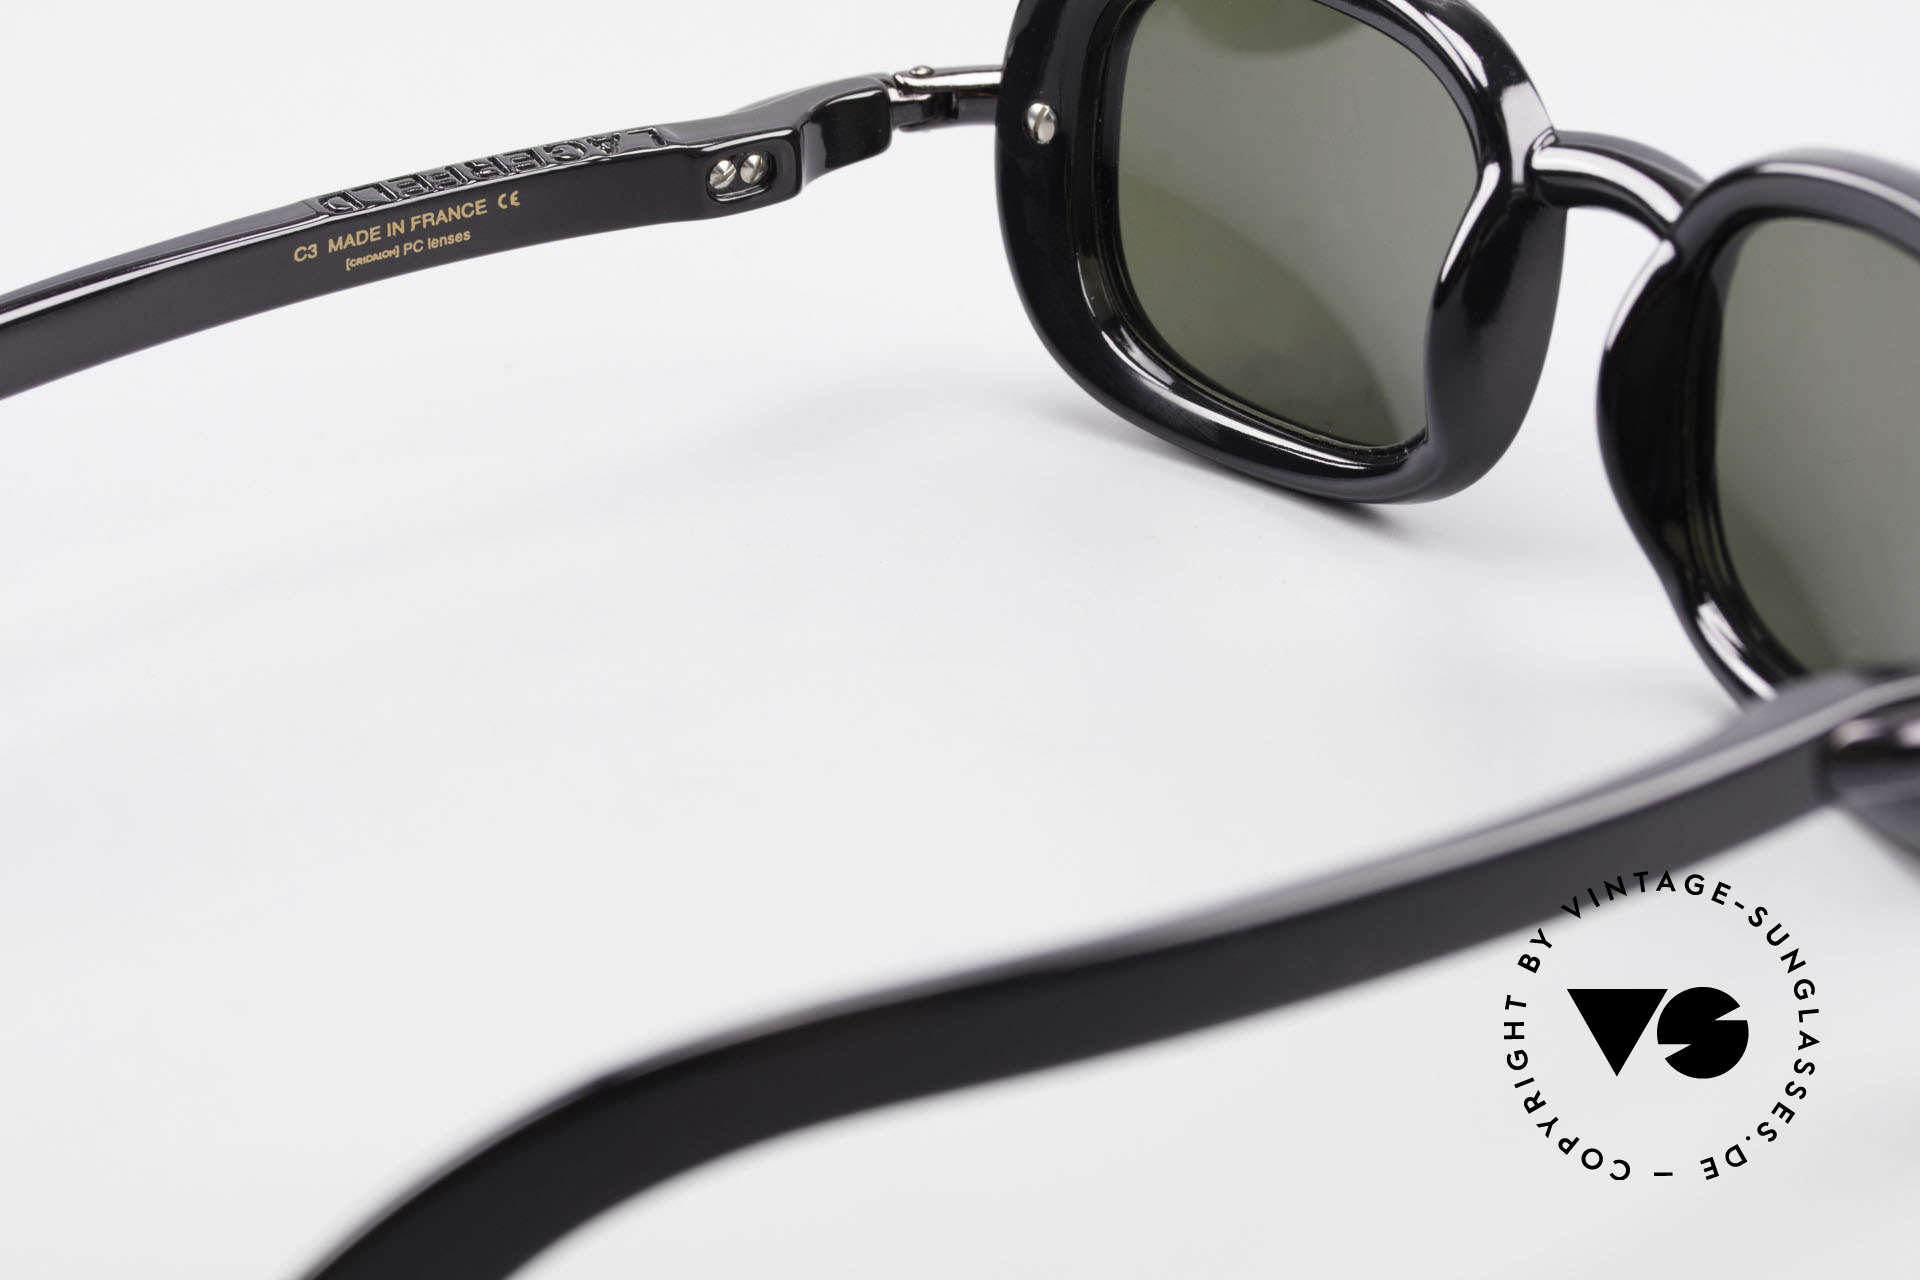 Karl Lagerfeld 4117 Rare 90's Ladies Sunglasses, the sun lenses could be replaced with prescription lenses, Made for Women